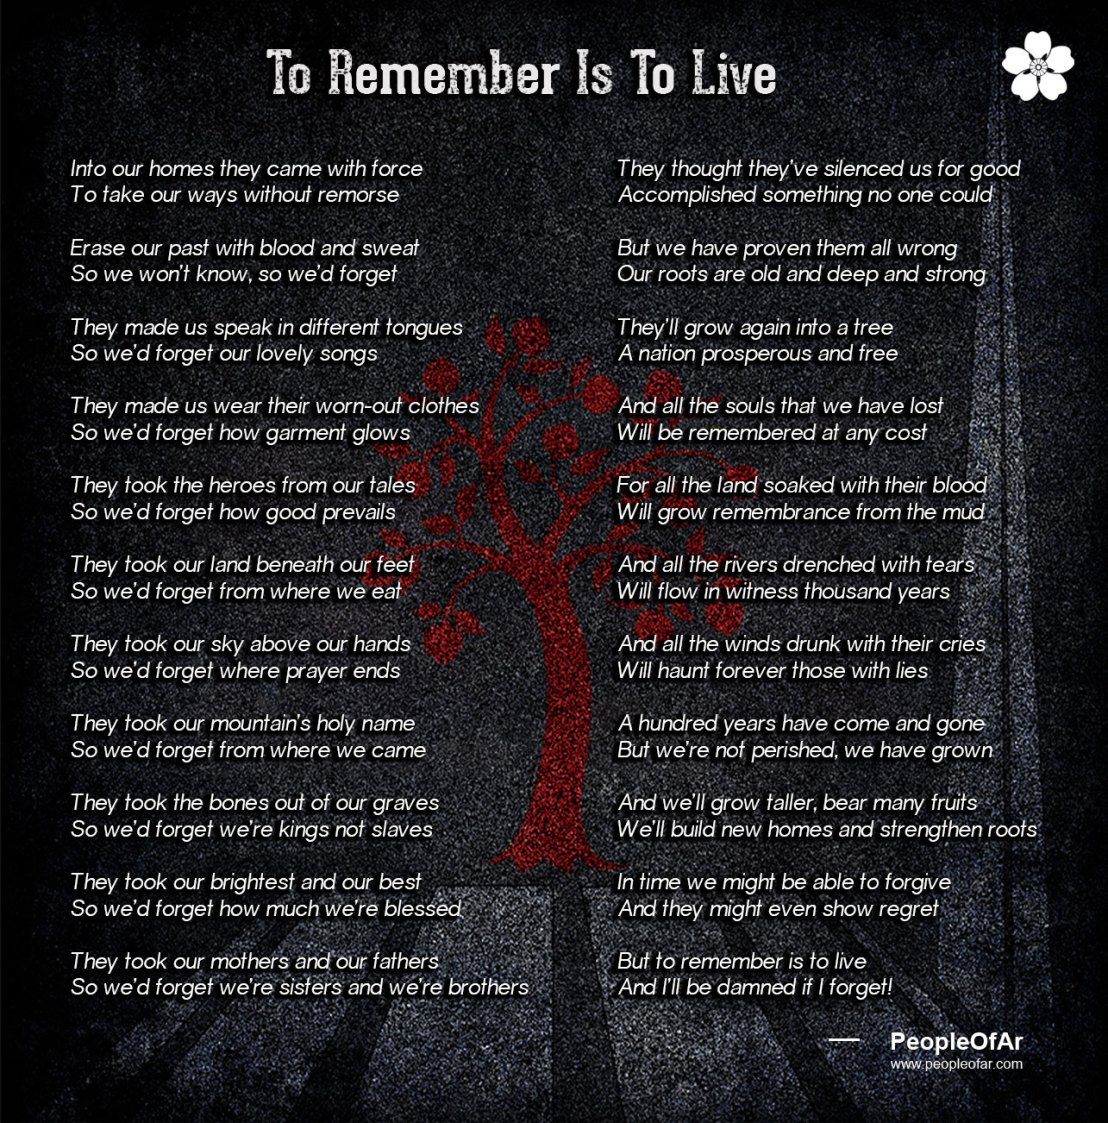 To Remember Is To Live